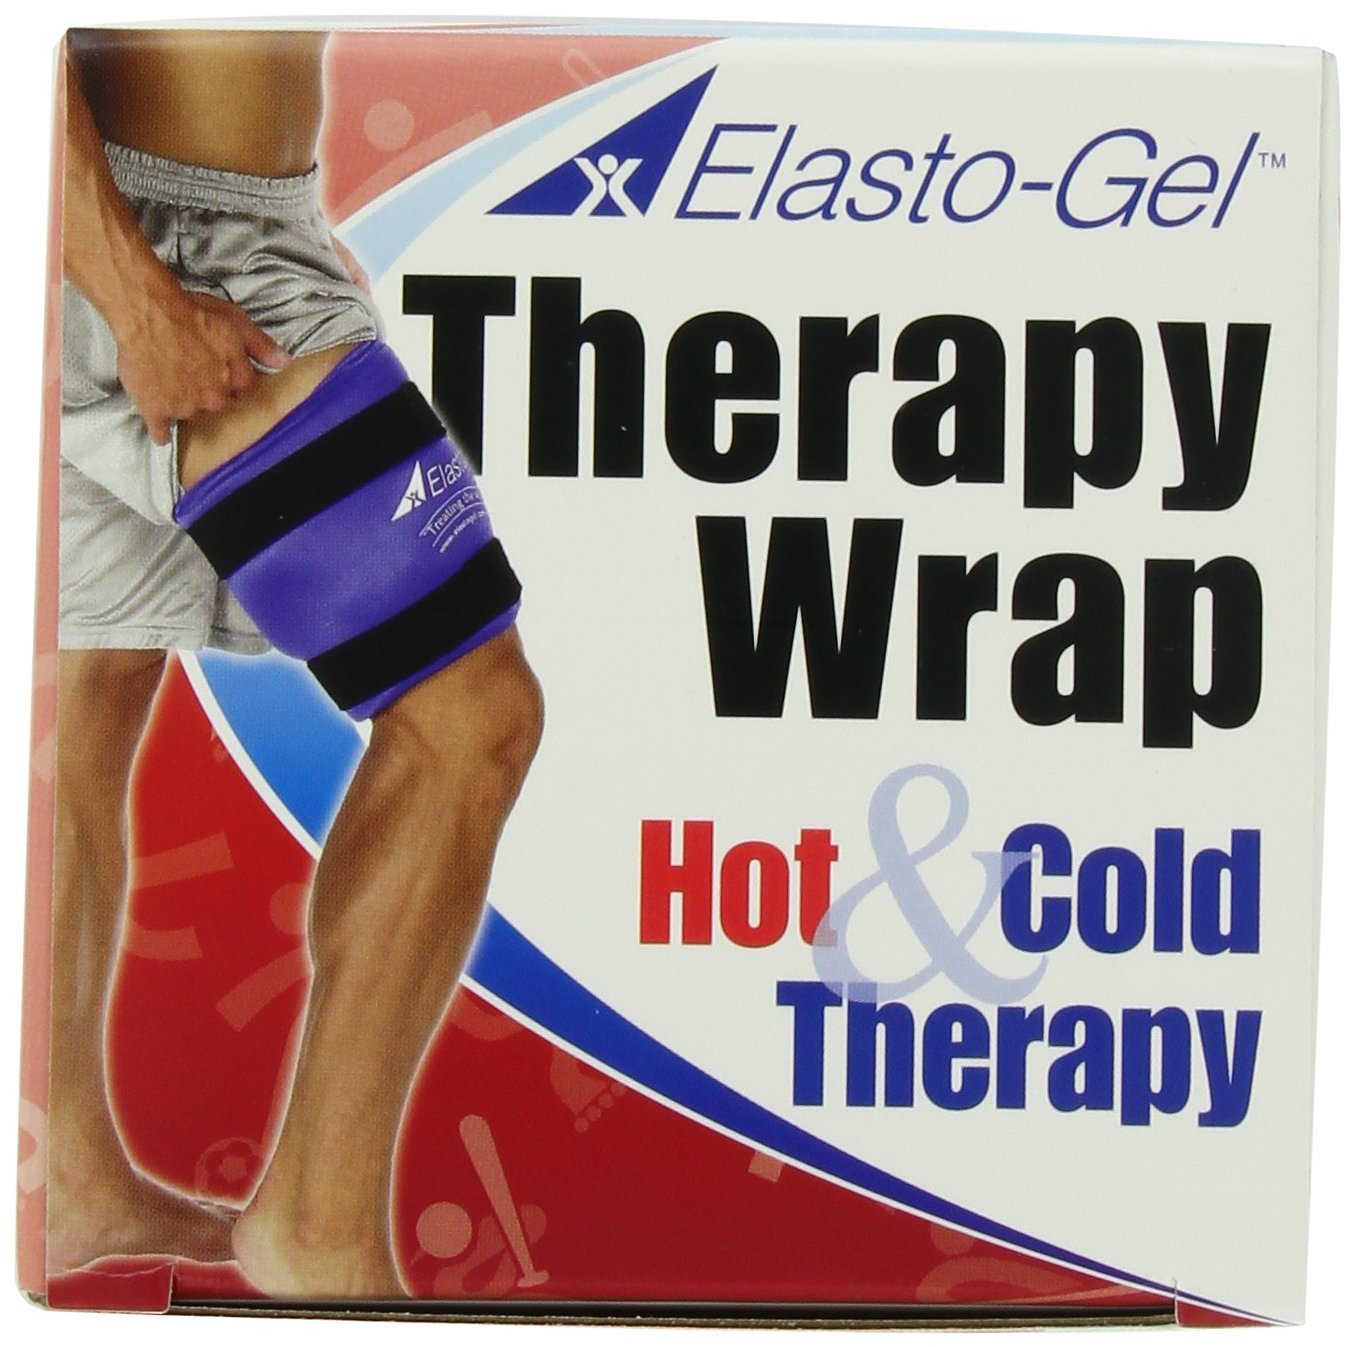 Review of Elasto-Gel All Purpose Hot/Cold Therapy Wrap